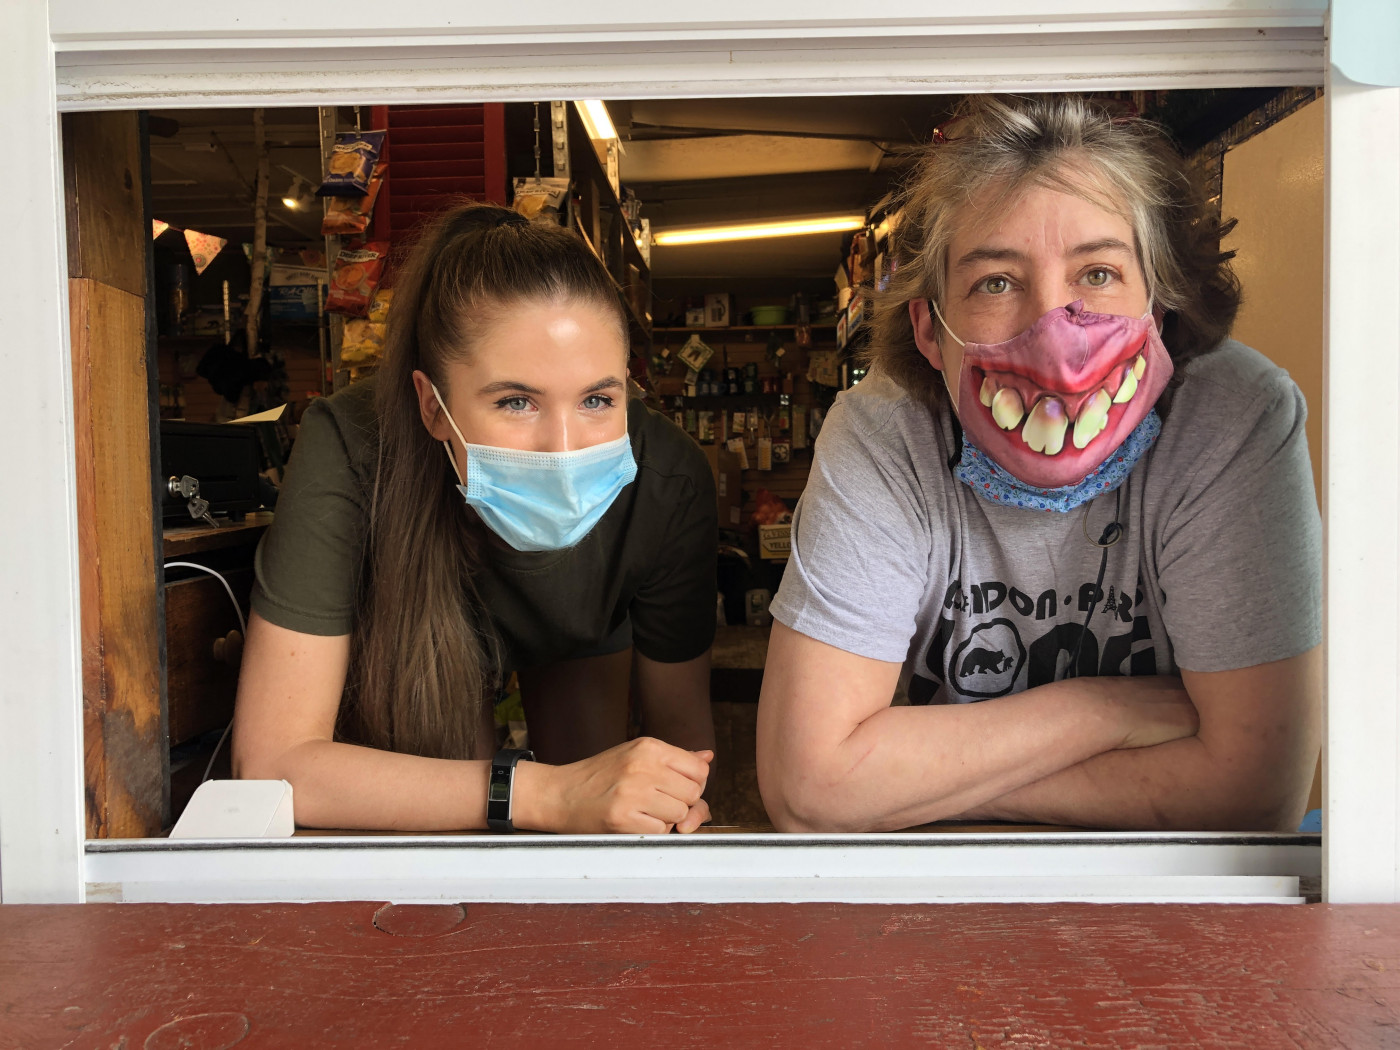 Owner Vickie Sandiford and Employee at Takeout Window